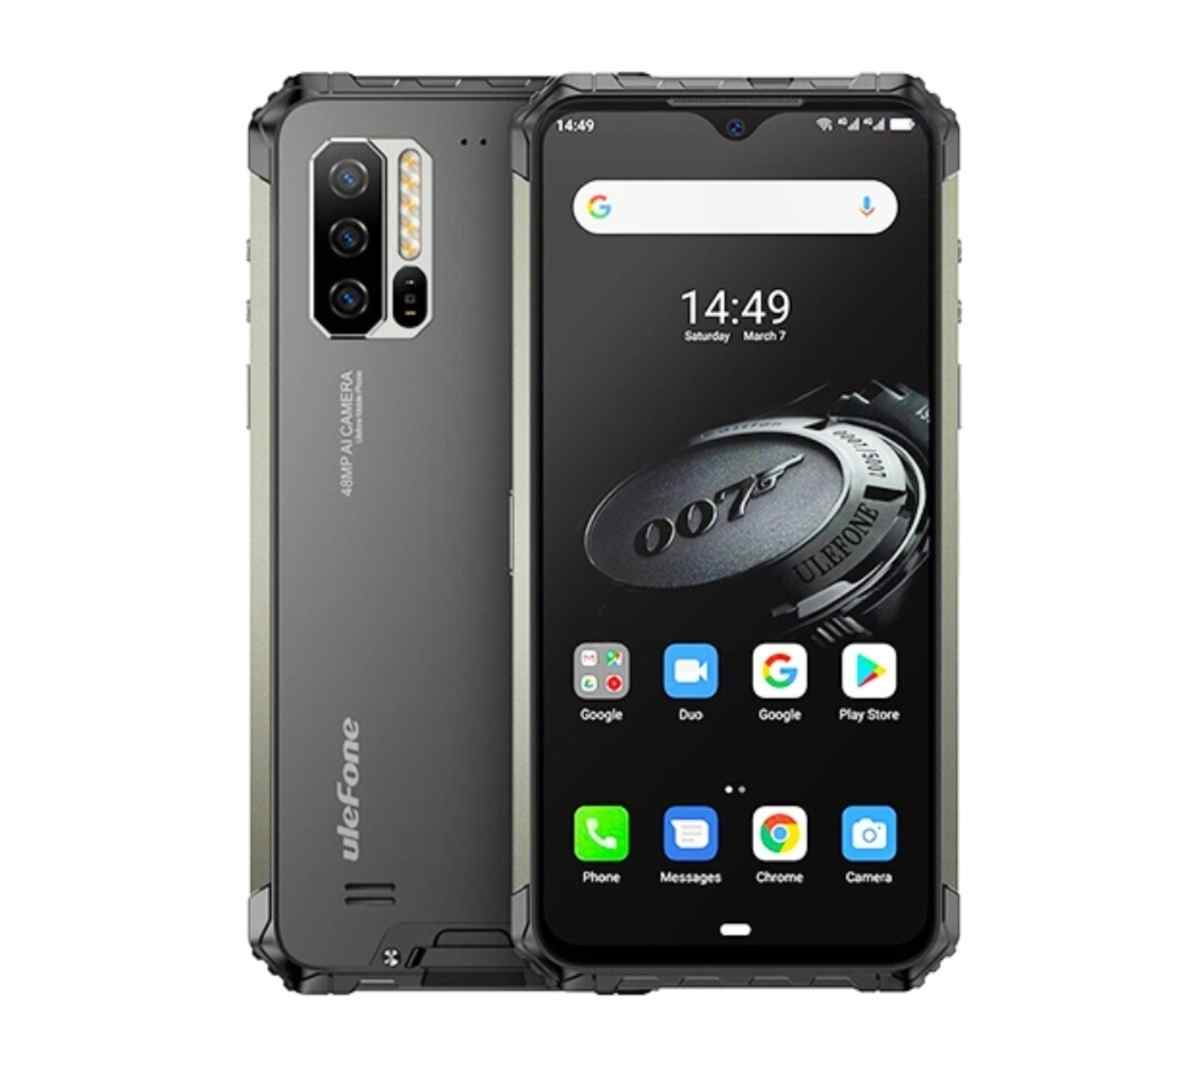 Ulefone Armor 7E price in Nigeria, price of Ulefone Armor 7E in Nigeria, how much is the Ulefone Armor 7E in Nigeria, Ulefone Armor 7E specs and price in Nigeria, ulefone armor 7e specs, ulefone armor 7e price, Armor 7E, Ulefone Armor price in USA, Ulefone Armor 7E price in UAE, Ulefone Armor 7e price in India, Ulefone Armor 7e and price in Nigeria, Ulefone Armor 7E in Nigeria